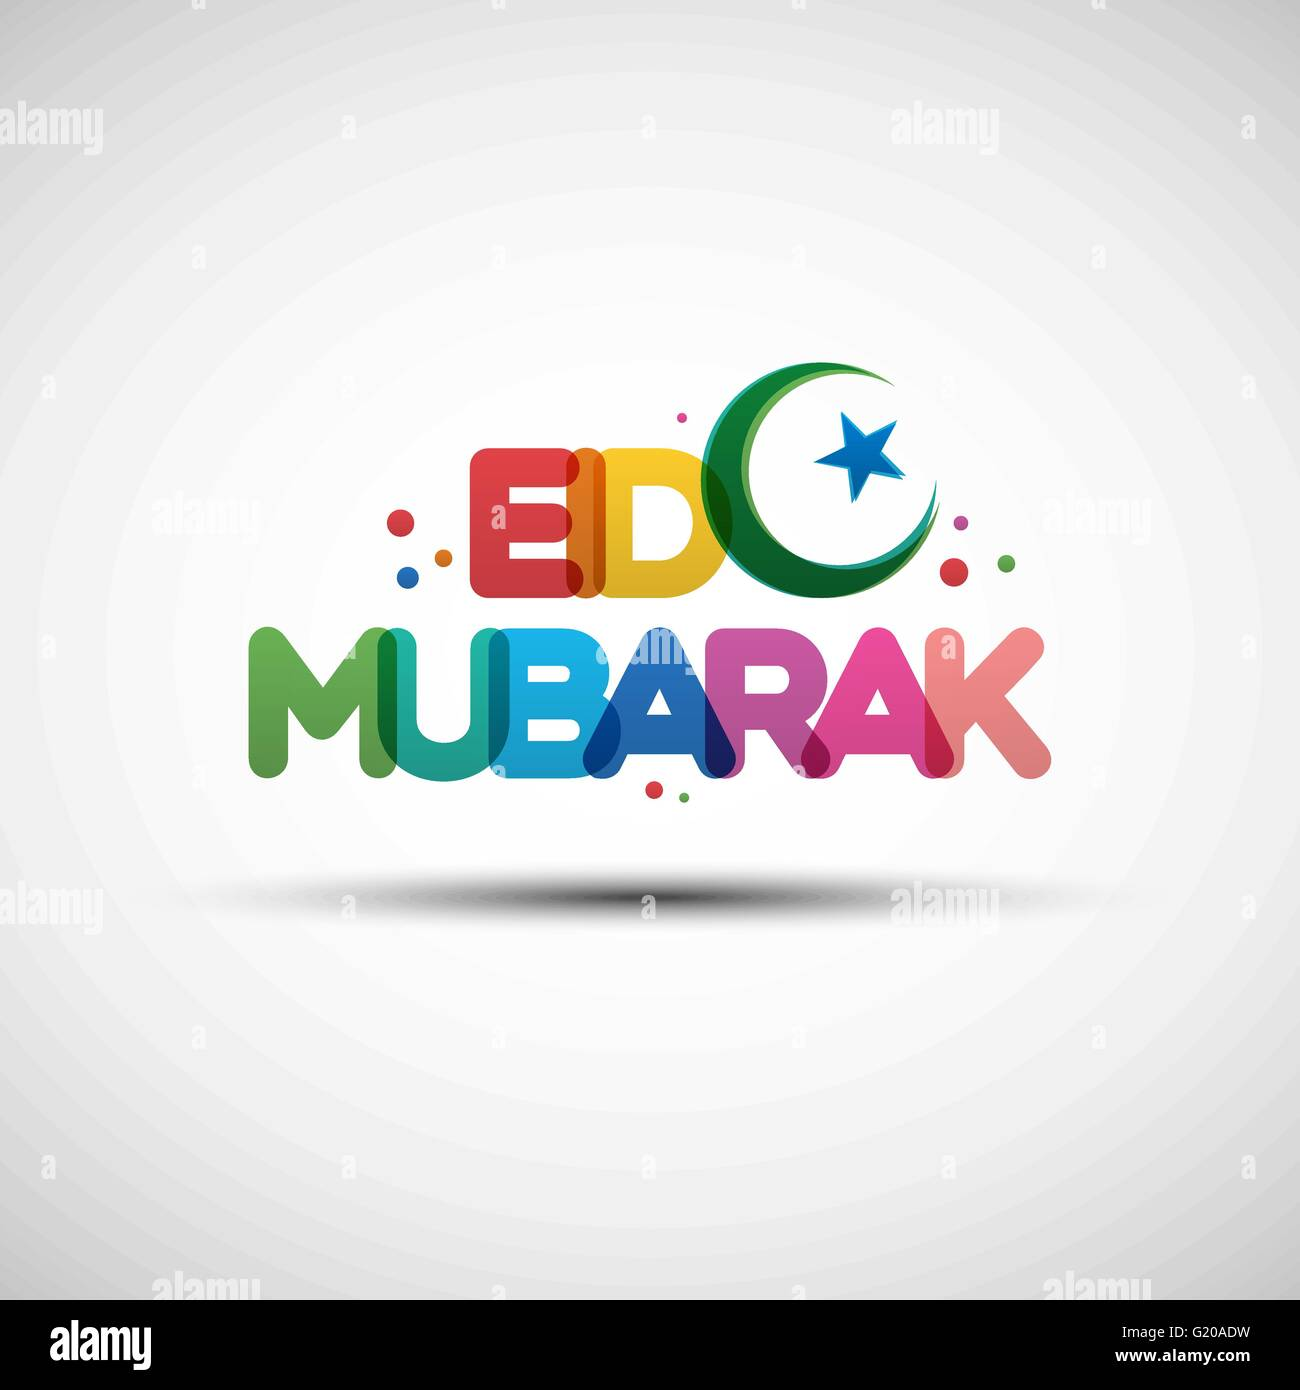 Eid mubarak greeting card stock photos eid mubarak greeting card vector illustration of eid mubarak greeting card design with creative multicolored transparent text for holy m4hsunfo